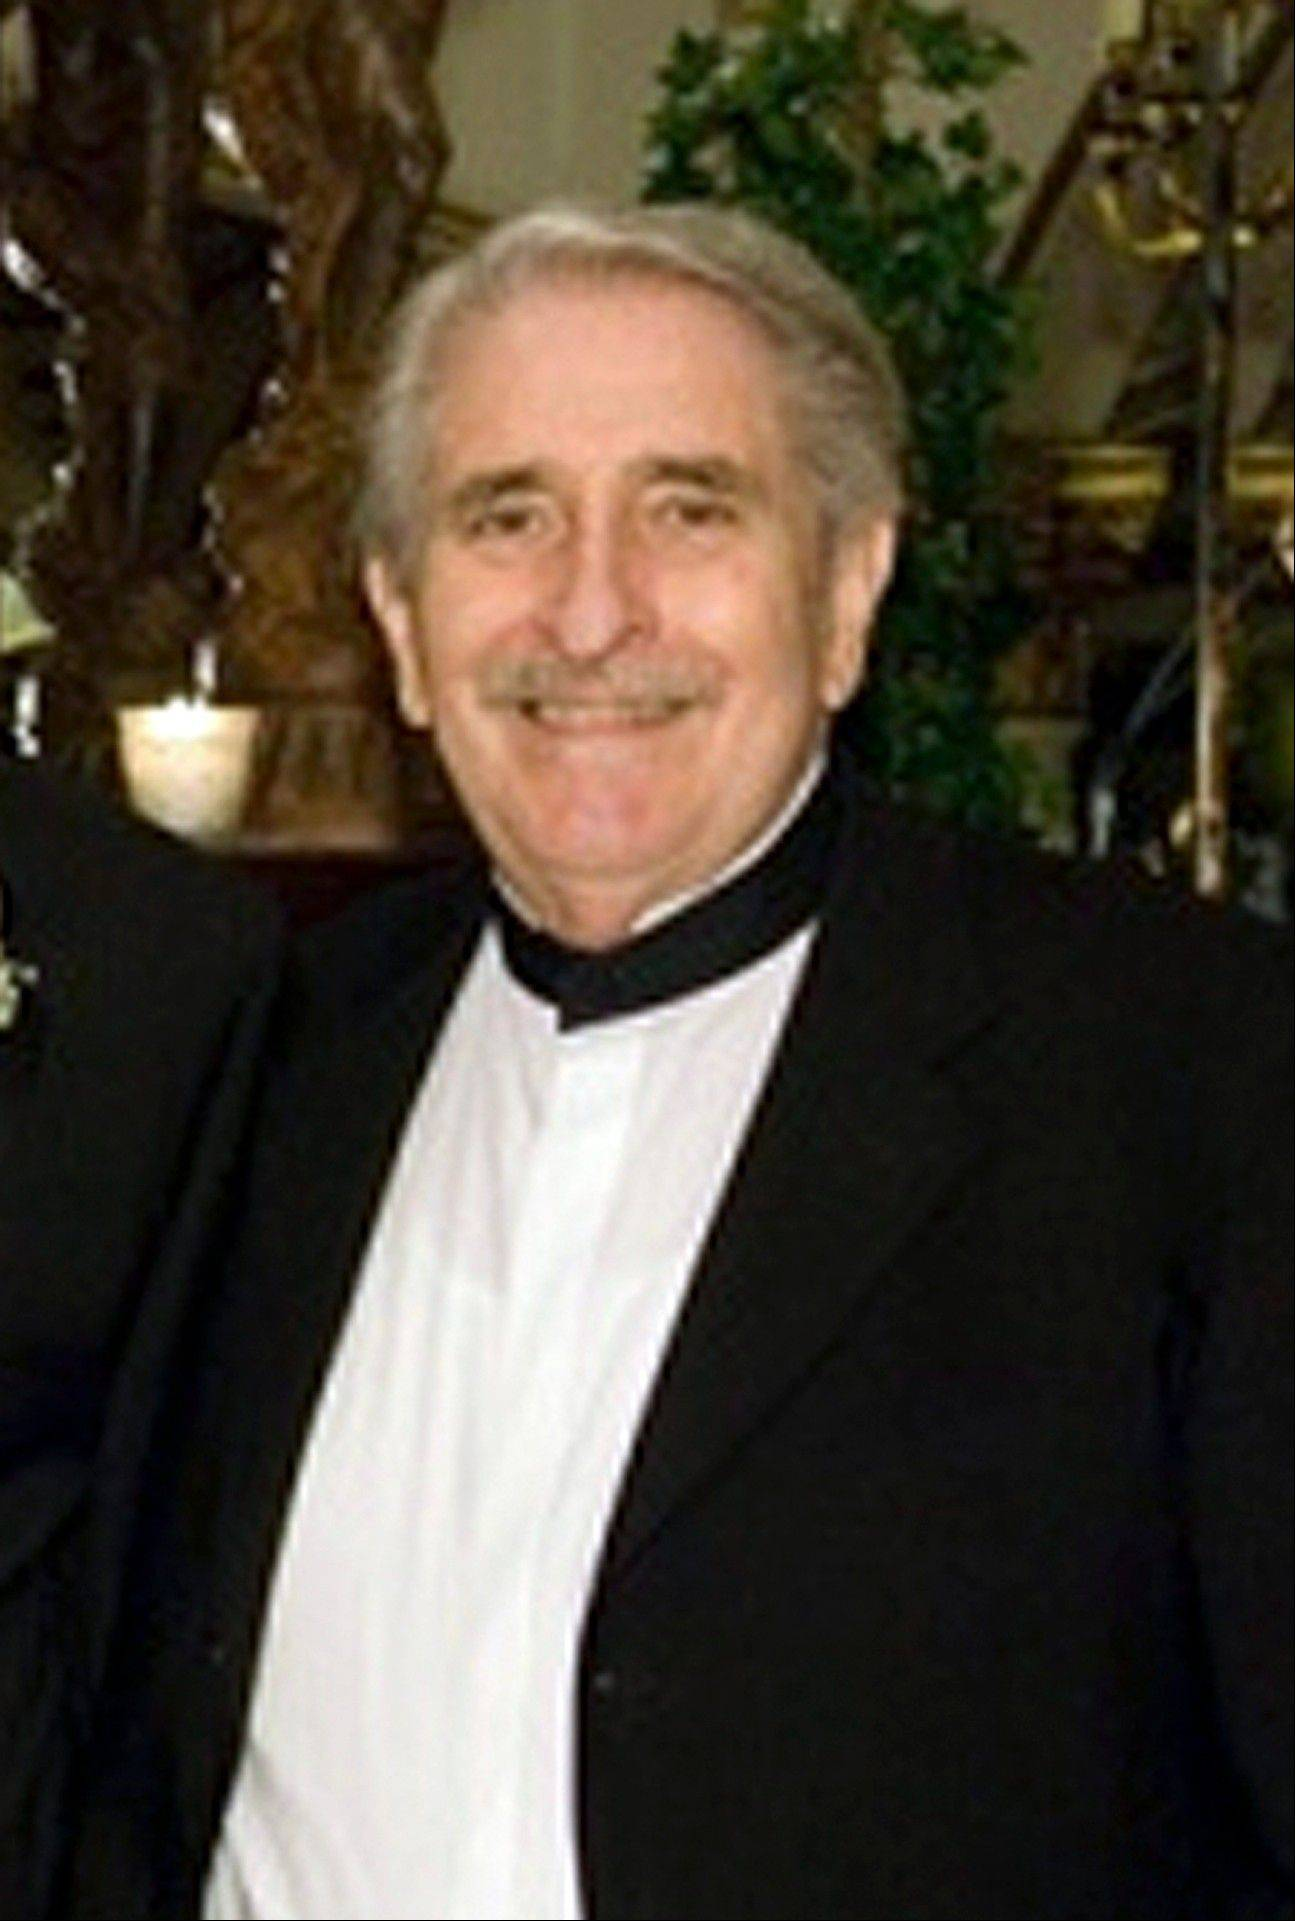 Paul Crouch Sr., at a family event in California.